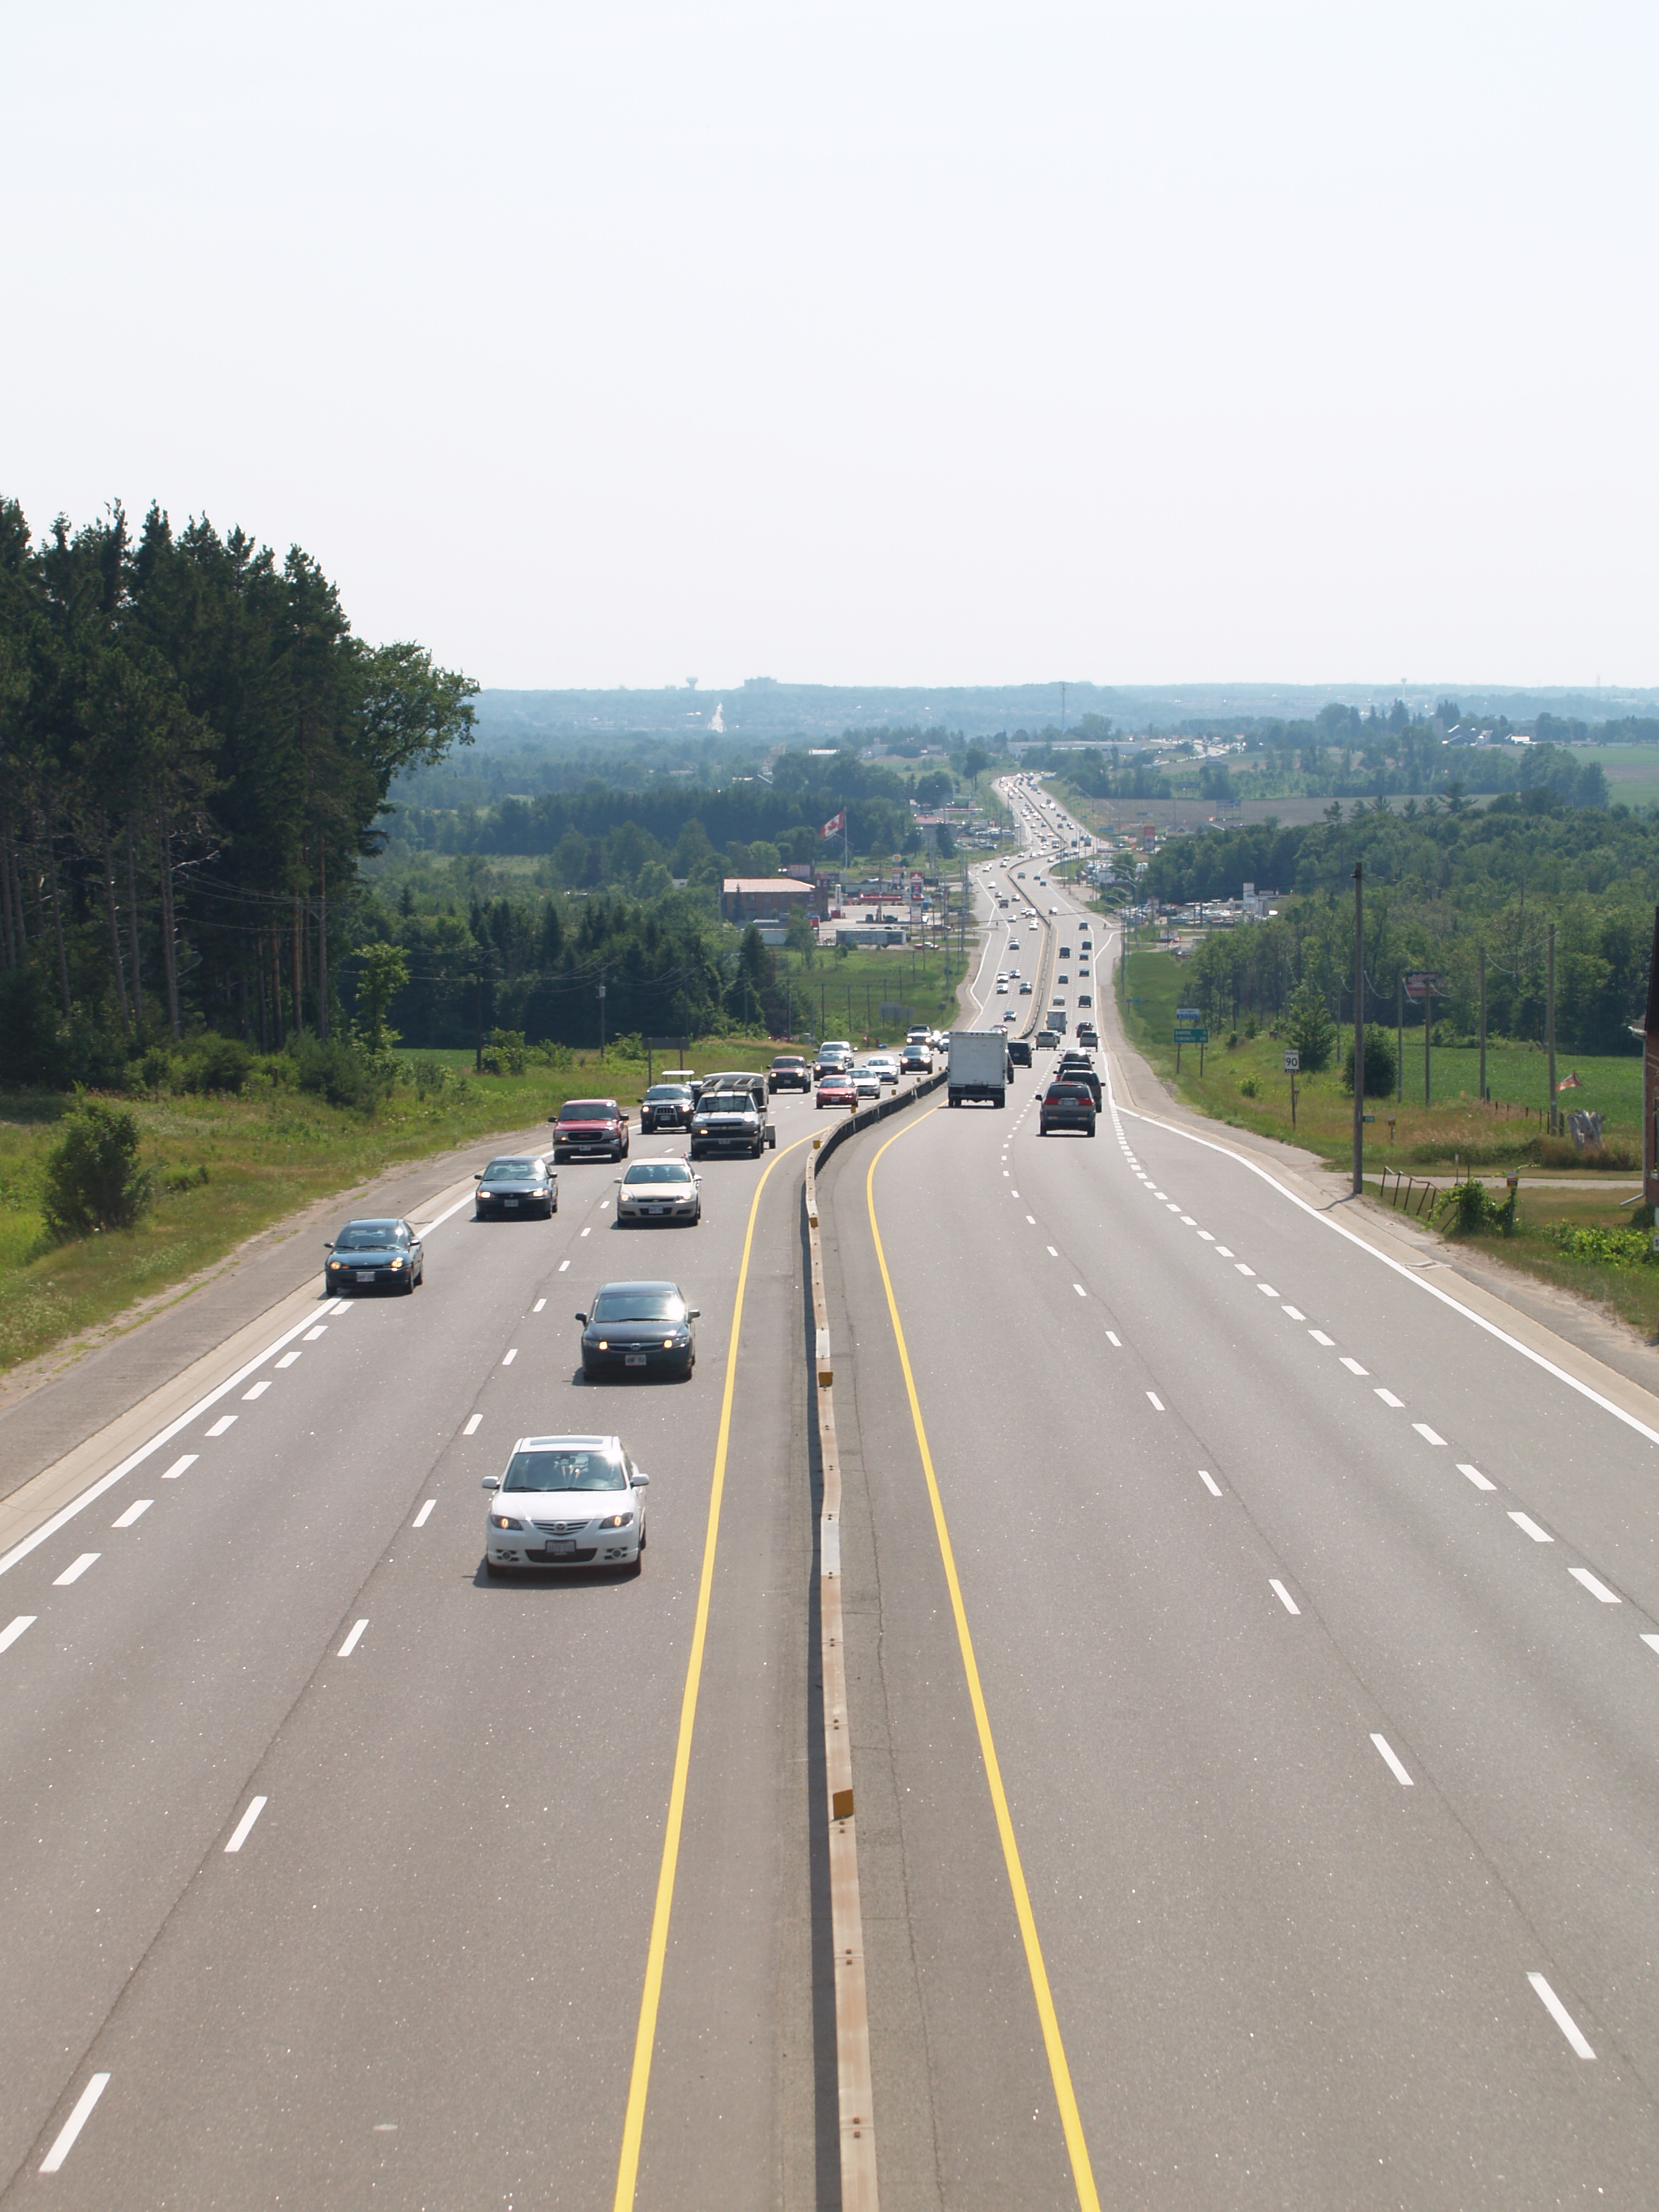 As A Result Of Provincial Downloading Highways To Municipalities In 1997 And 1998 Highway 11 Now Begins At The Crown Hill Interchange With 400